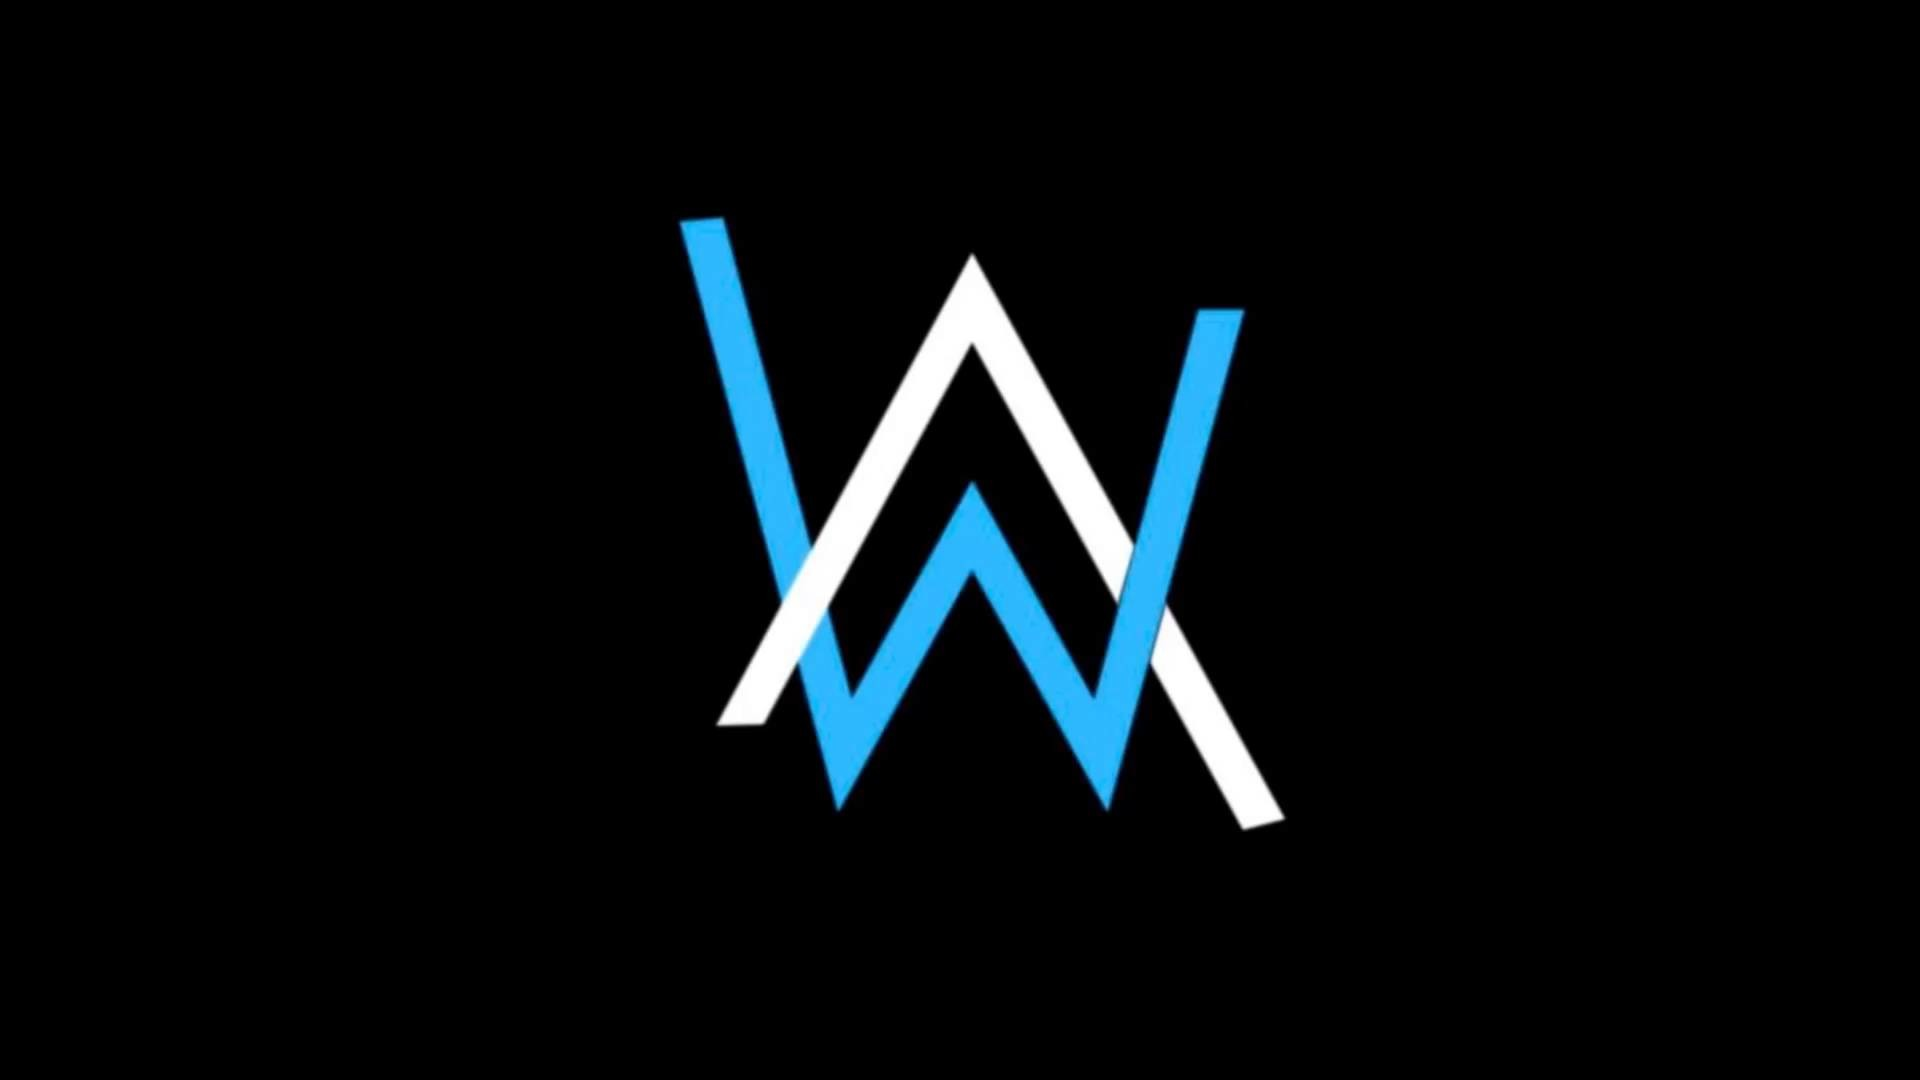 Alan Walker Wallpapers 73 Images